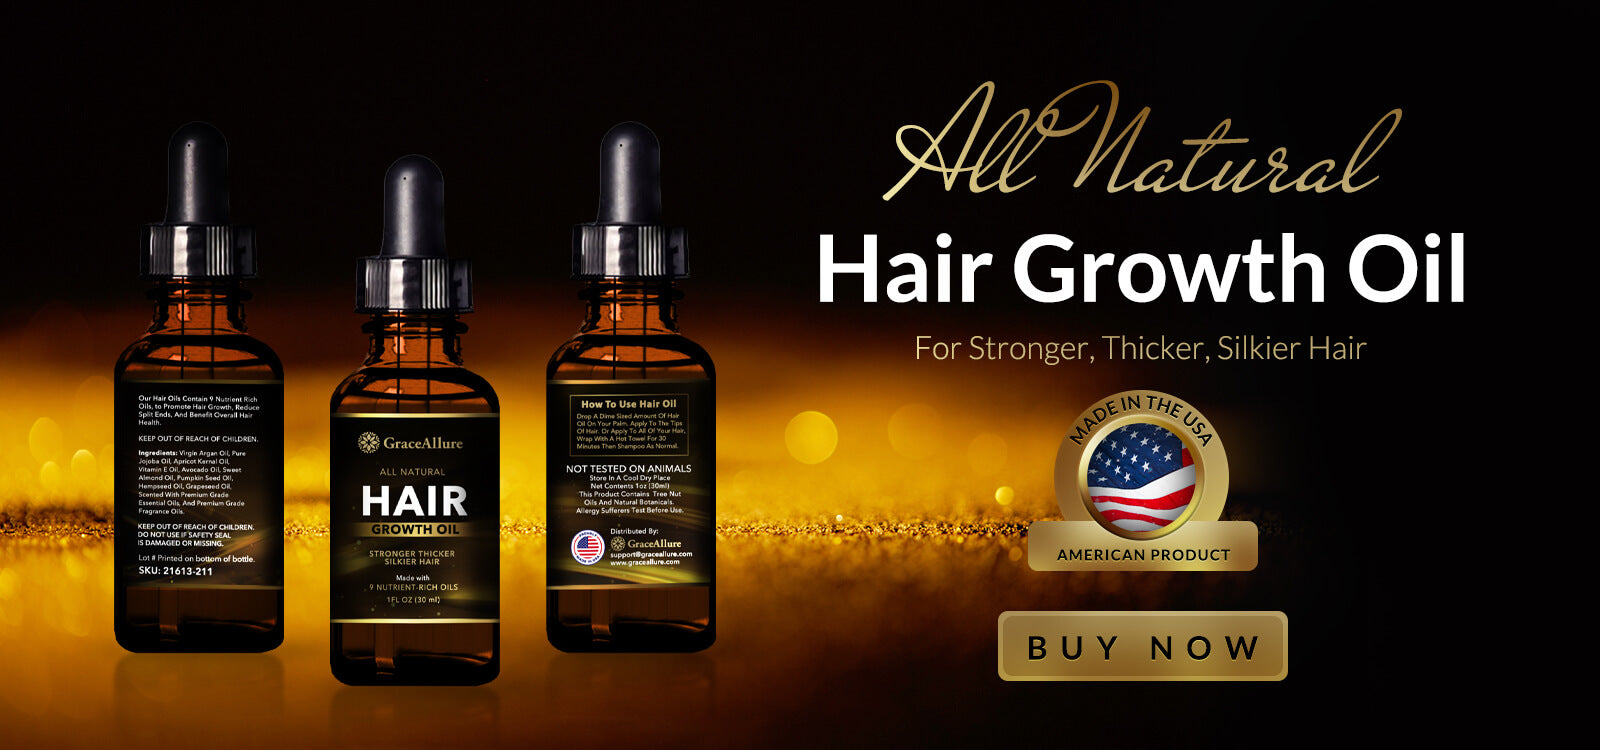 All Natural Hair Growth Oil for Stronger, Thicker and Silkier Hair